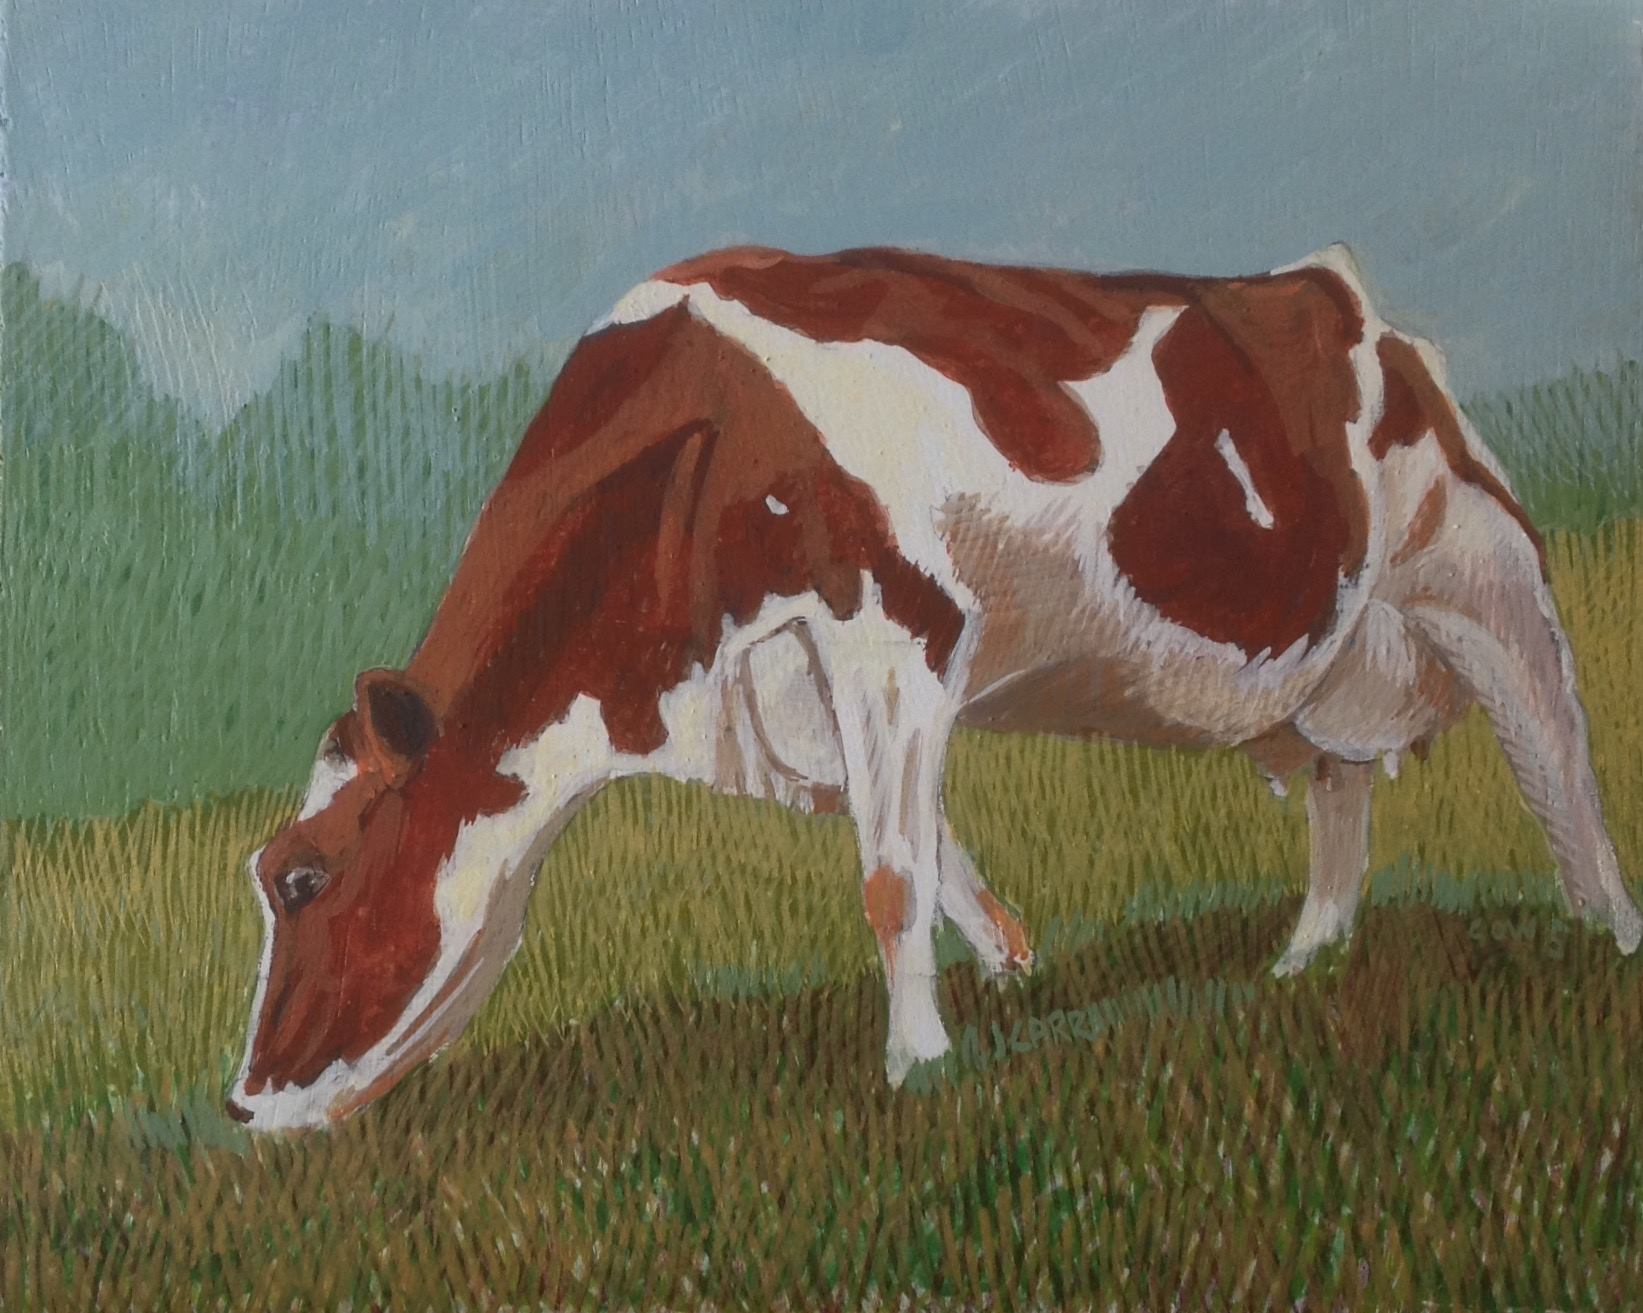 Cow 5 by Jane Carr